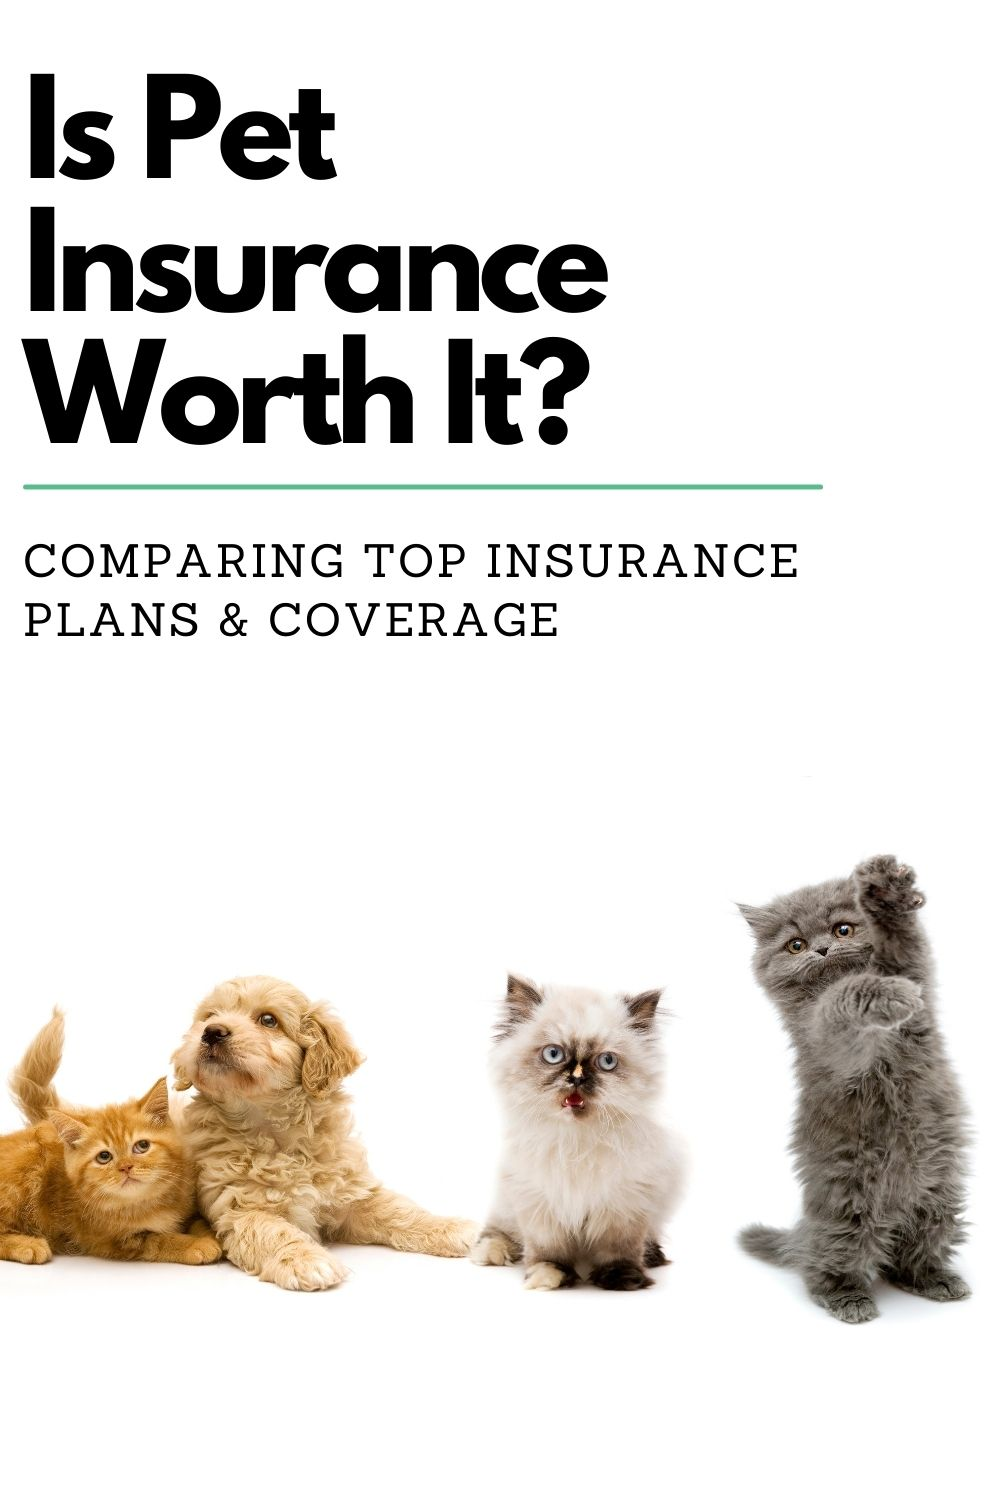 What about Pet Insurance?  Is Pet Insurance worth having?  Let's cover the basics and see how the math plays out.